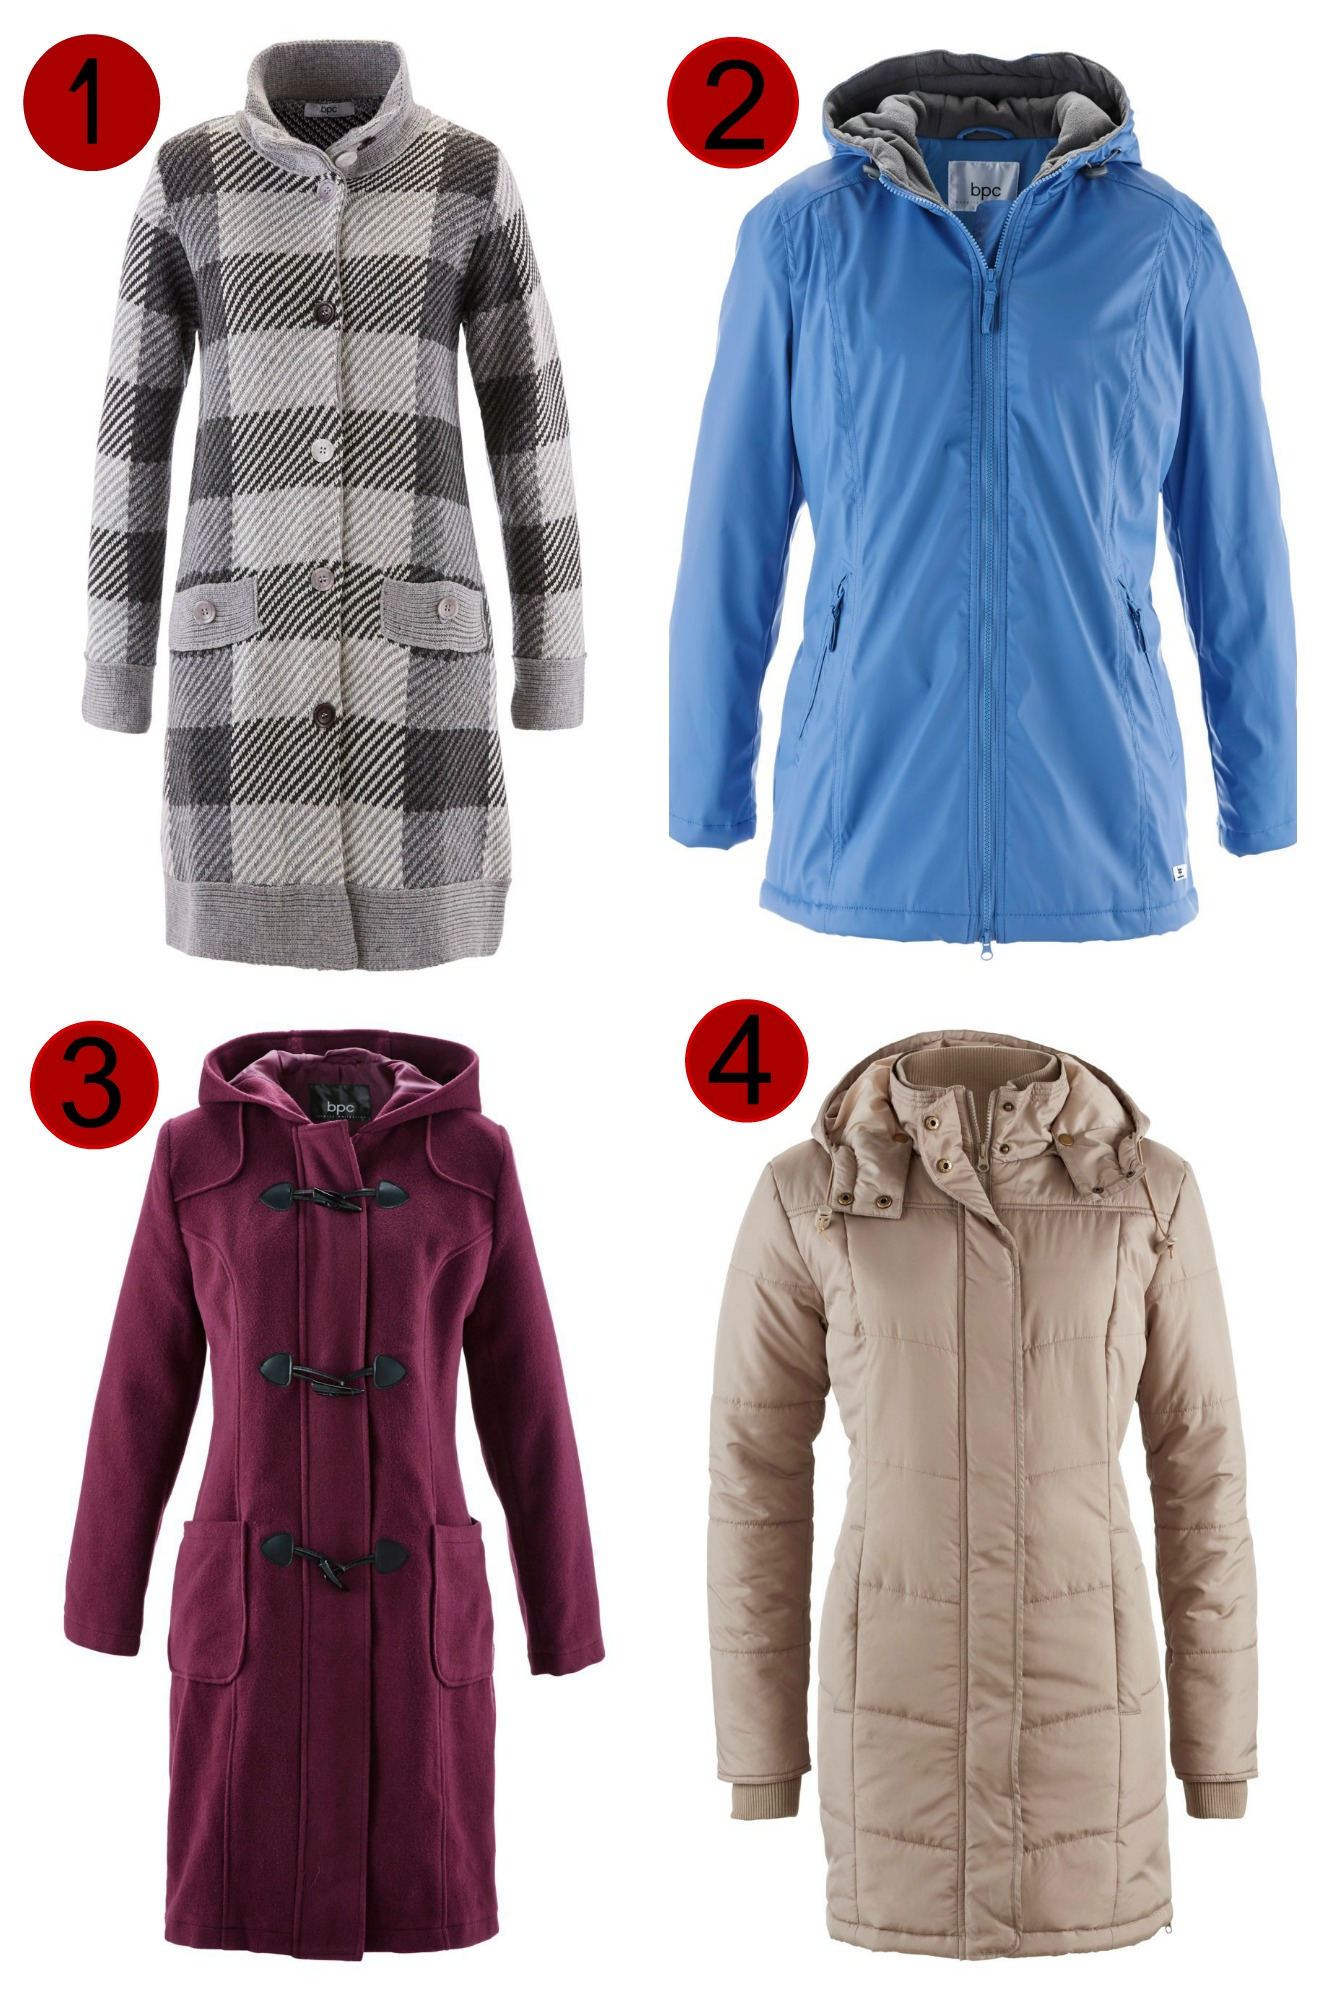 6869515a52b15 Winter Plus Size Coats bonprix duffle quitled waterproof checked wool